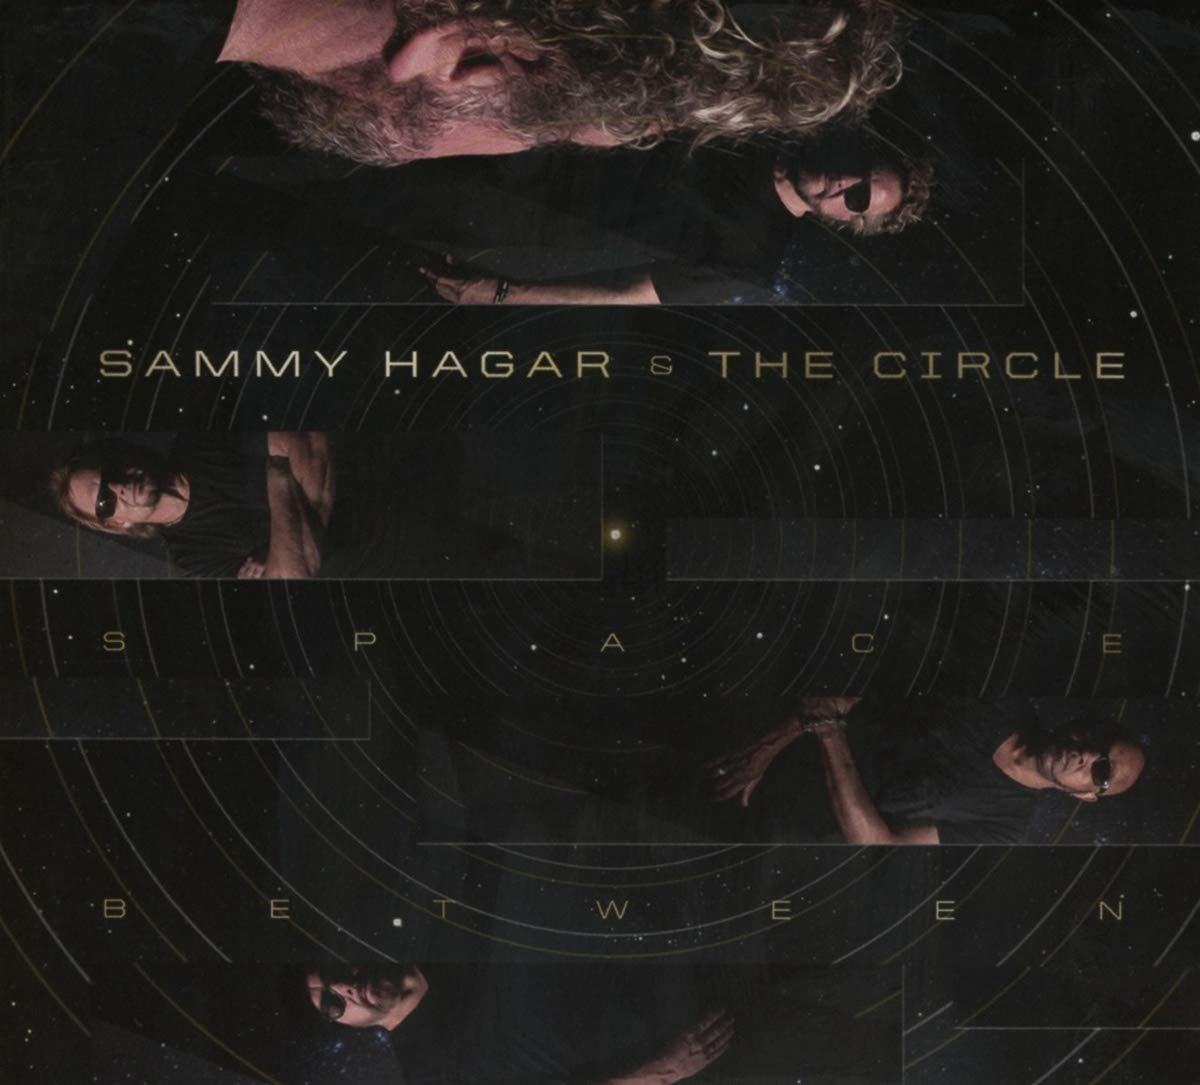 Sammy Hagar & The Circle